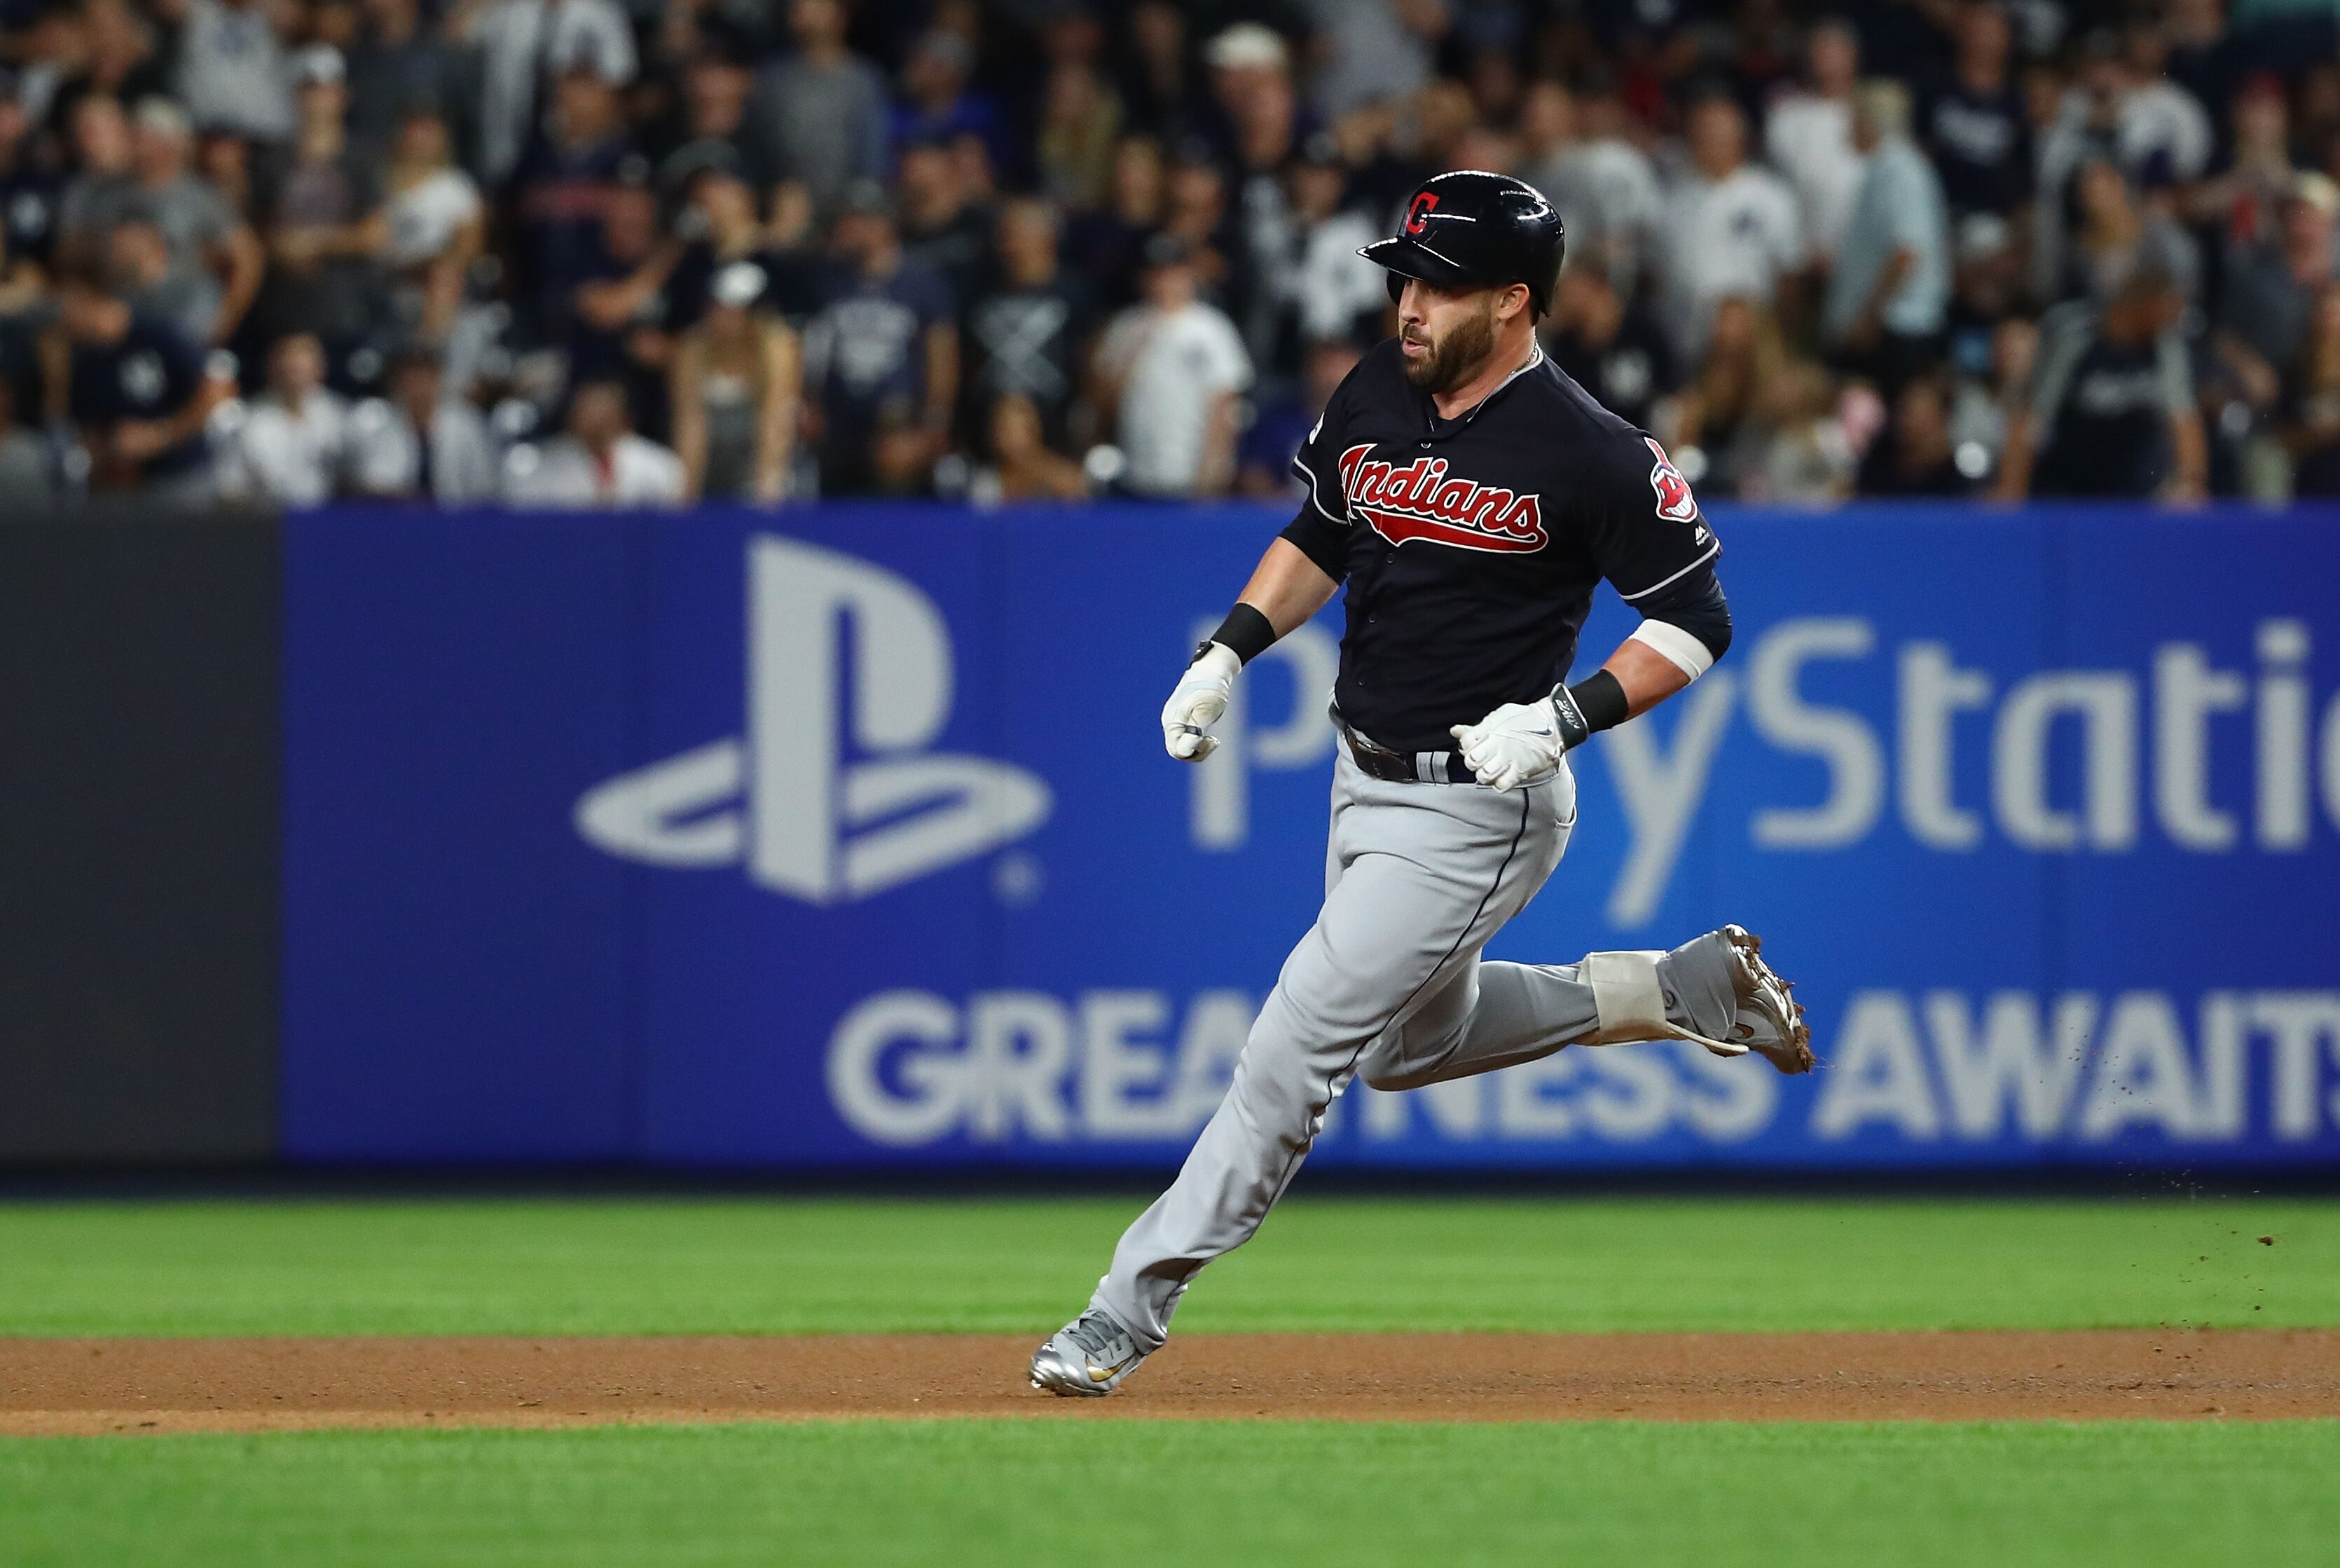 859148726-divisional-round-cleveland-indians-v-new-york-yankees-game-three.jpg